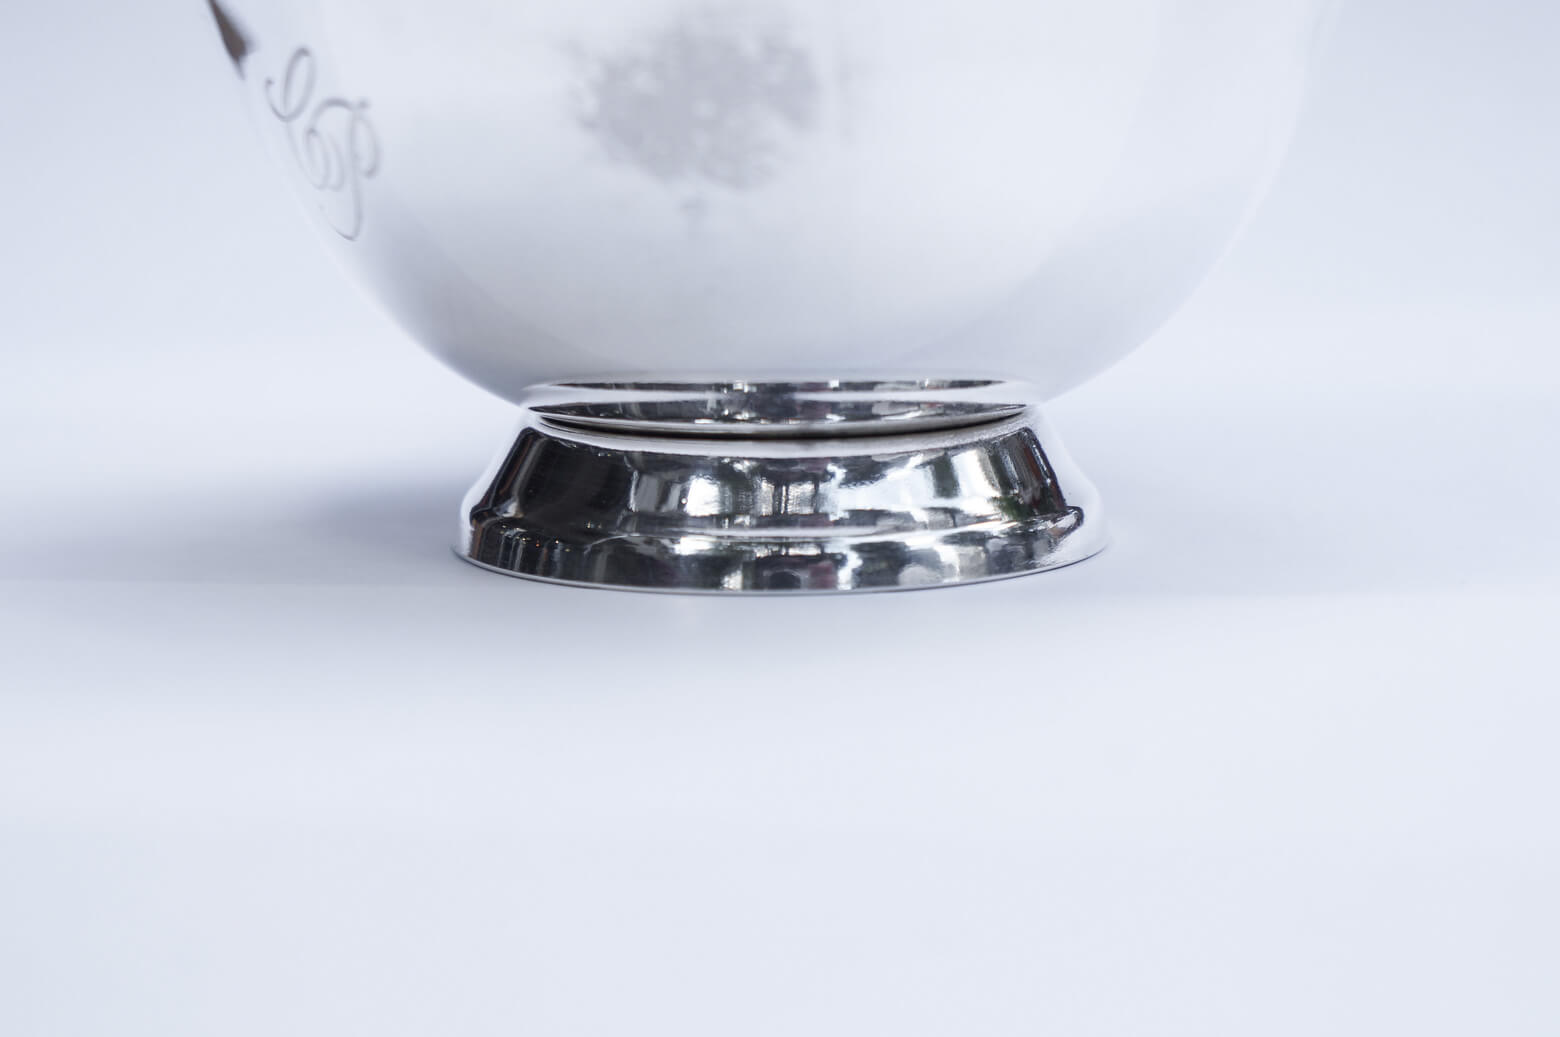 Casual Product Stainless Steel Sugar Bowl/カジュアル プロダクト ステンレス シュガーボウル キッチン雑貨 2